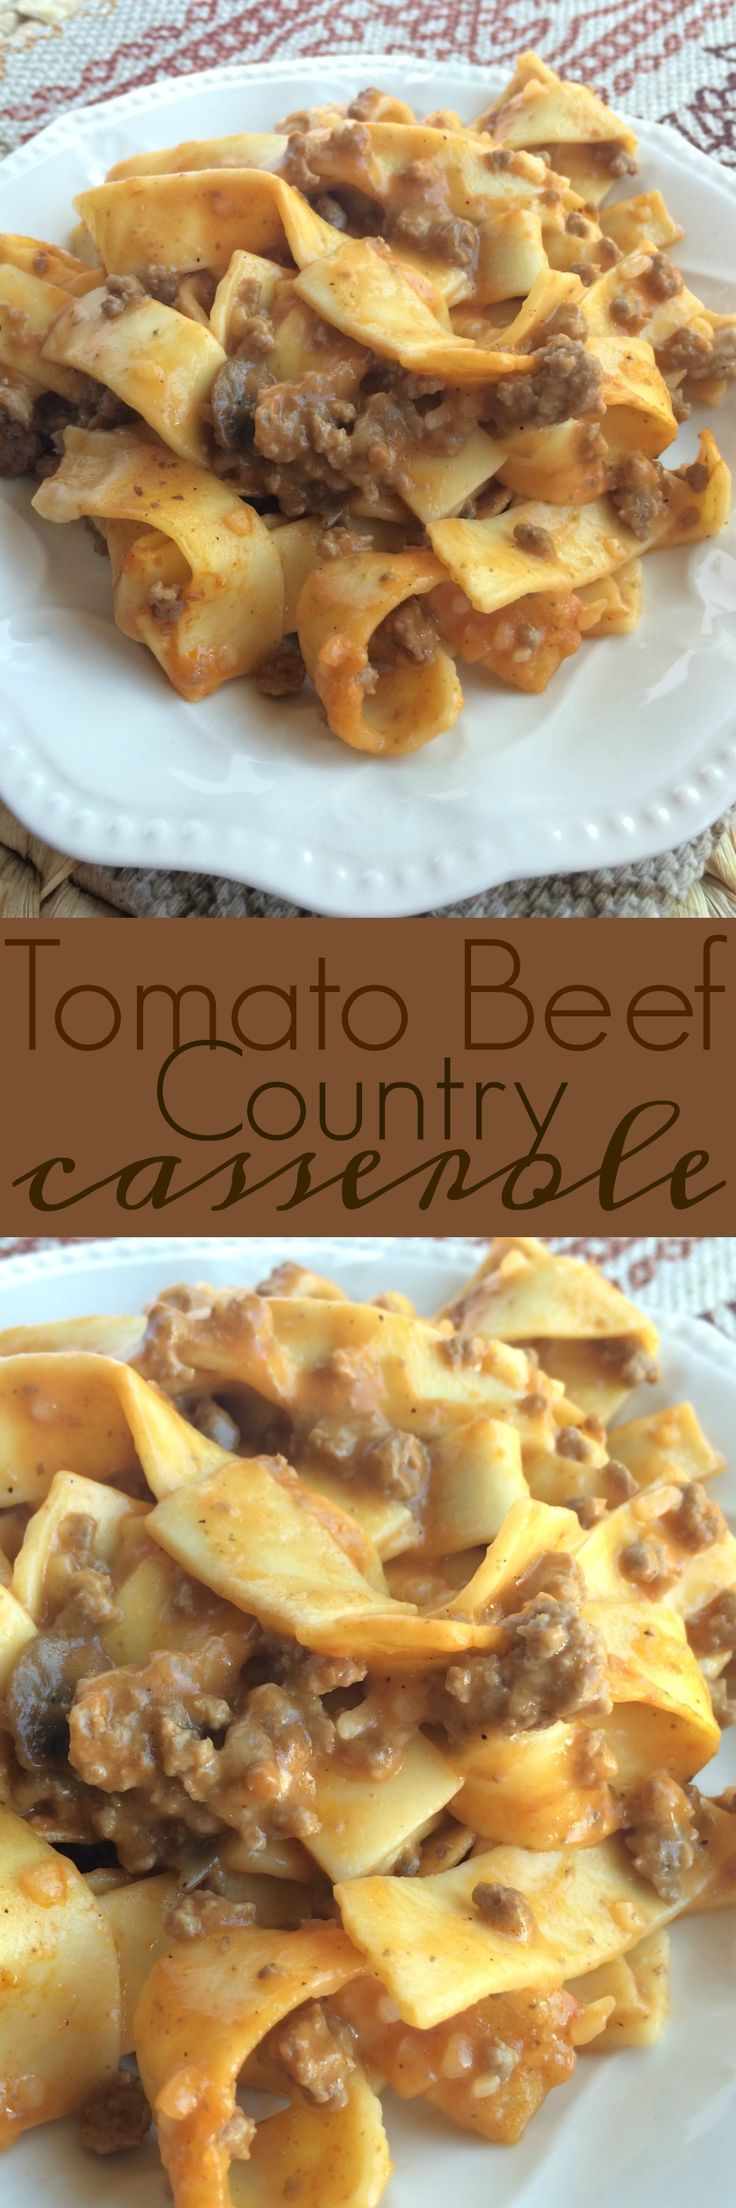 Tomato+Beef+Country+Casserole+from+Together+as+Family